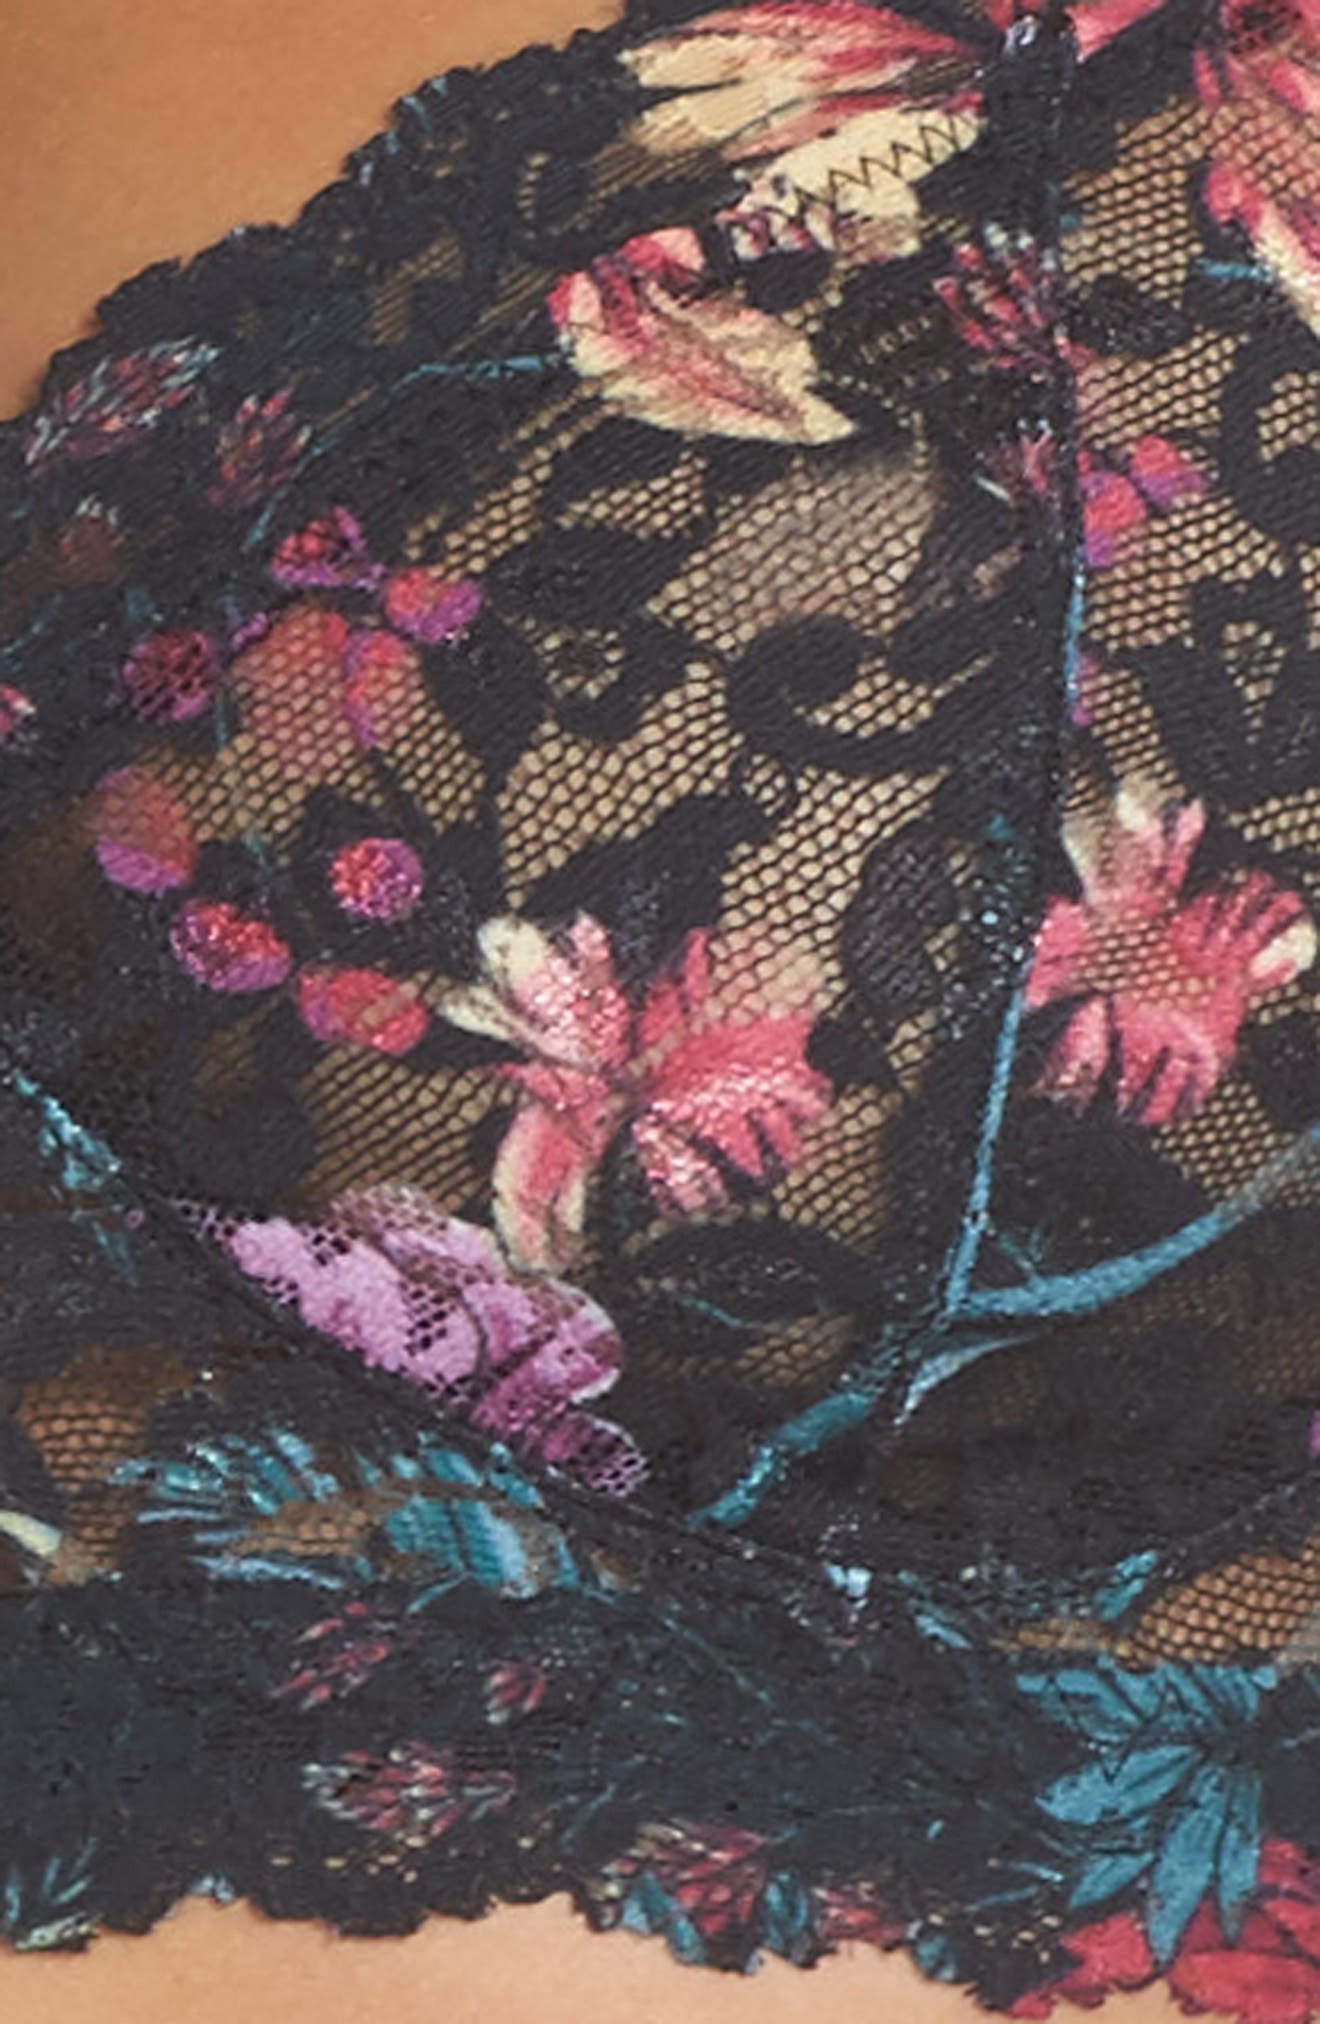 Moody Blooms Retro Bralette,                             Alternate thumbnail 4, color,                             001